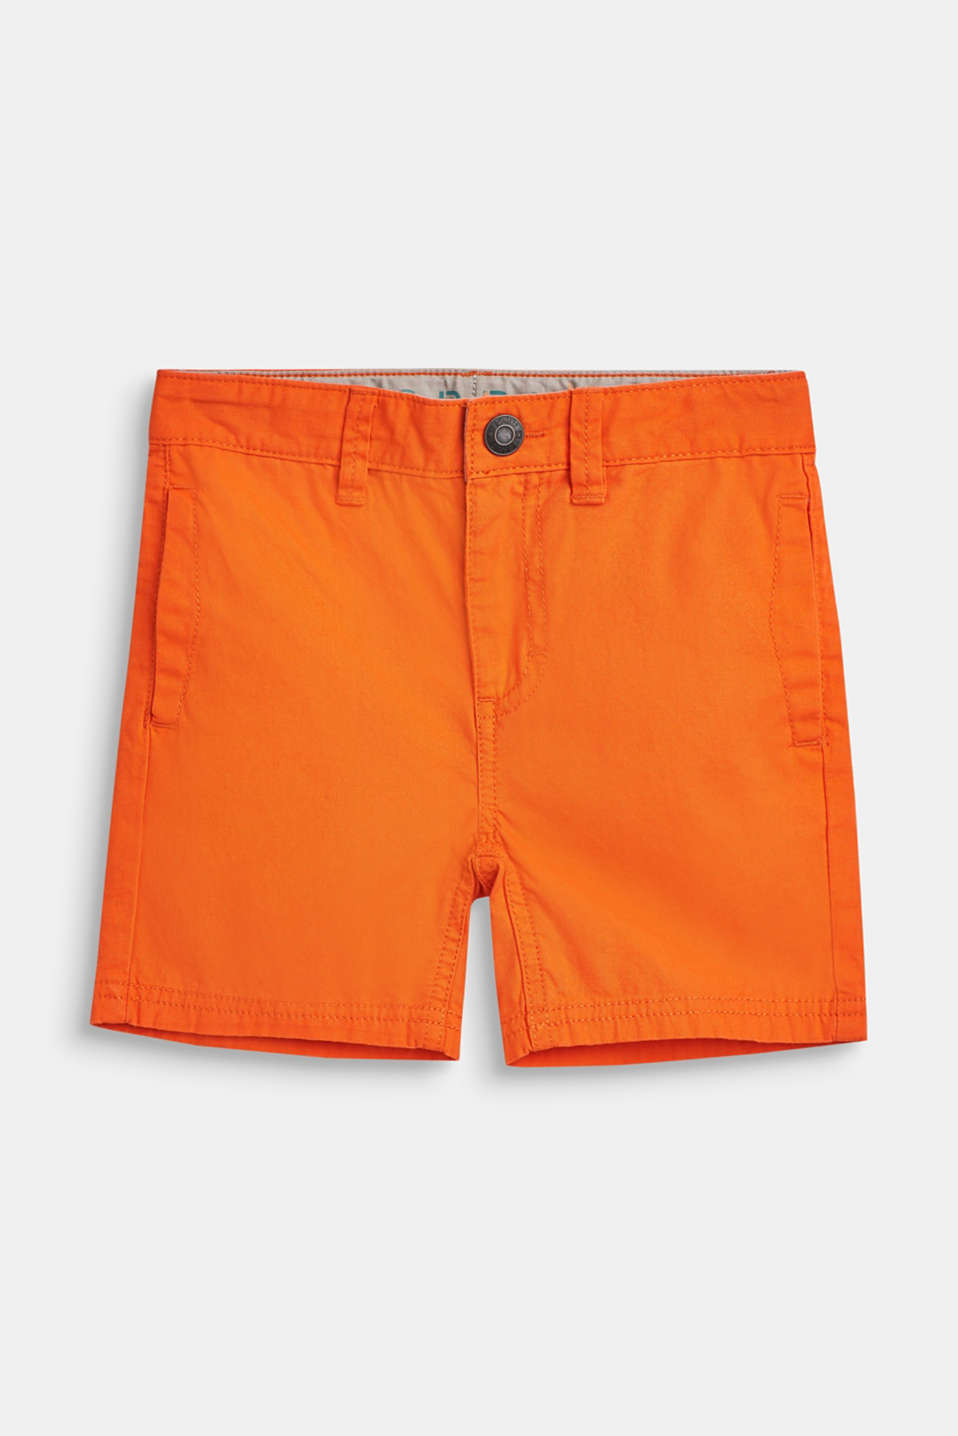 Esprit - Shorts with adjustable waistband, 100% cotton